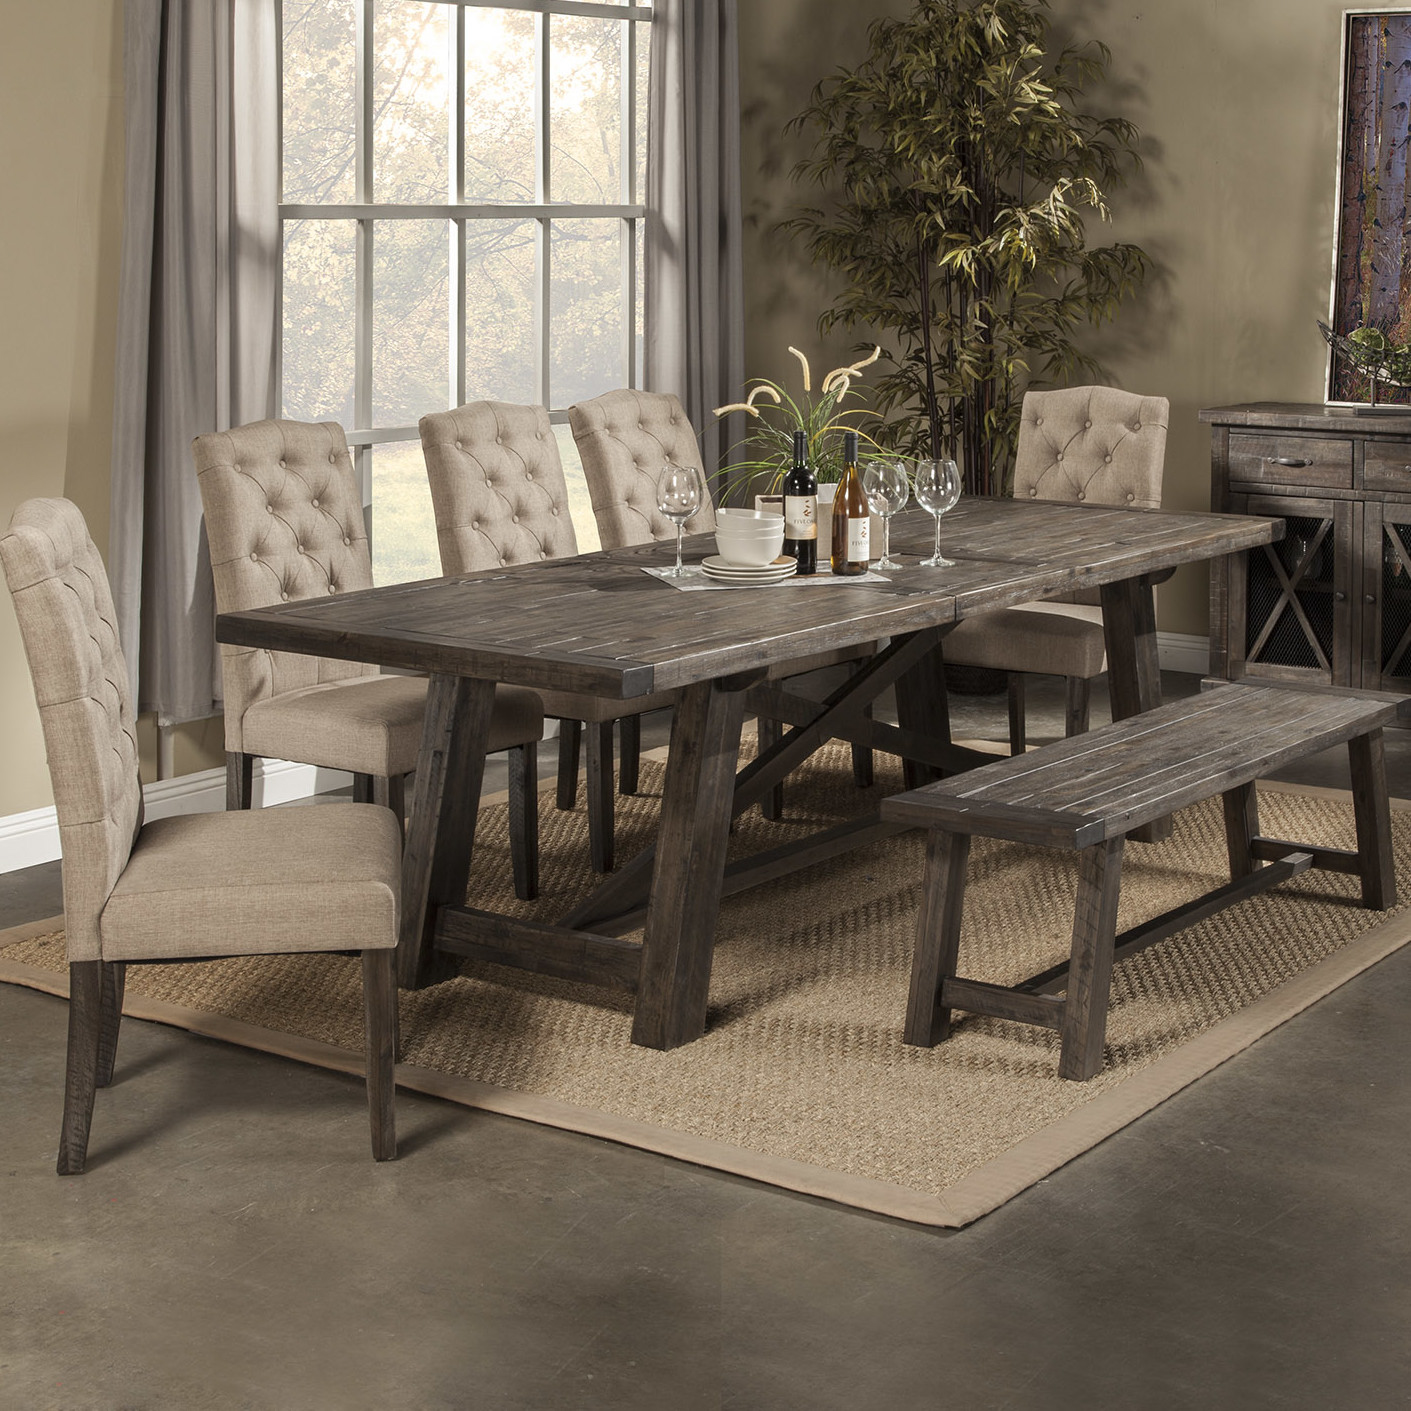 Best Dining Set For Family 5